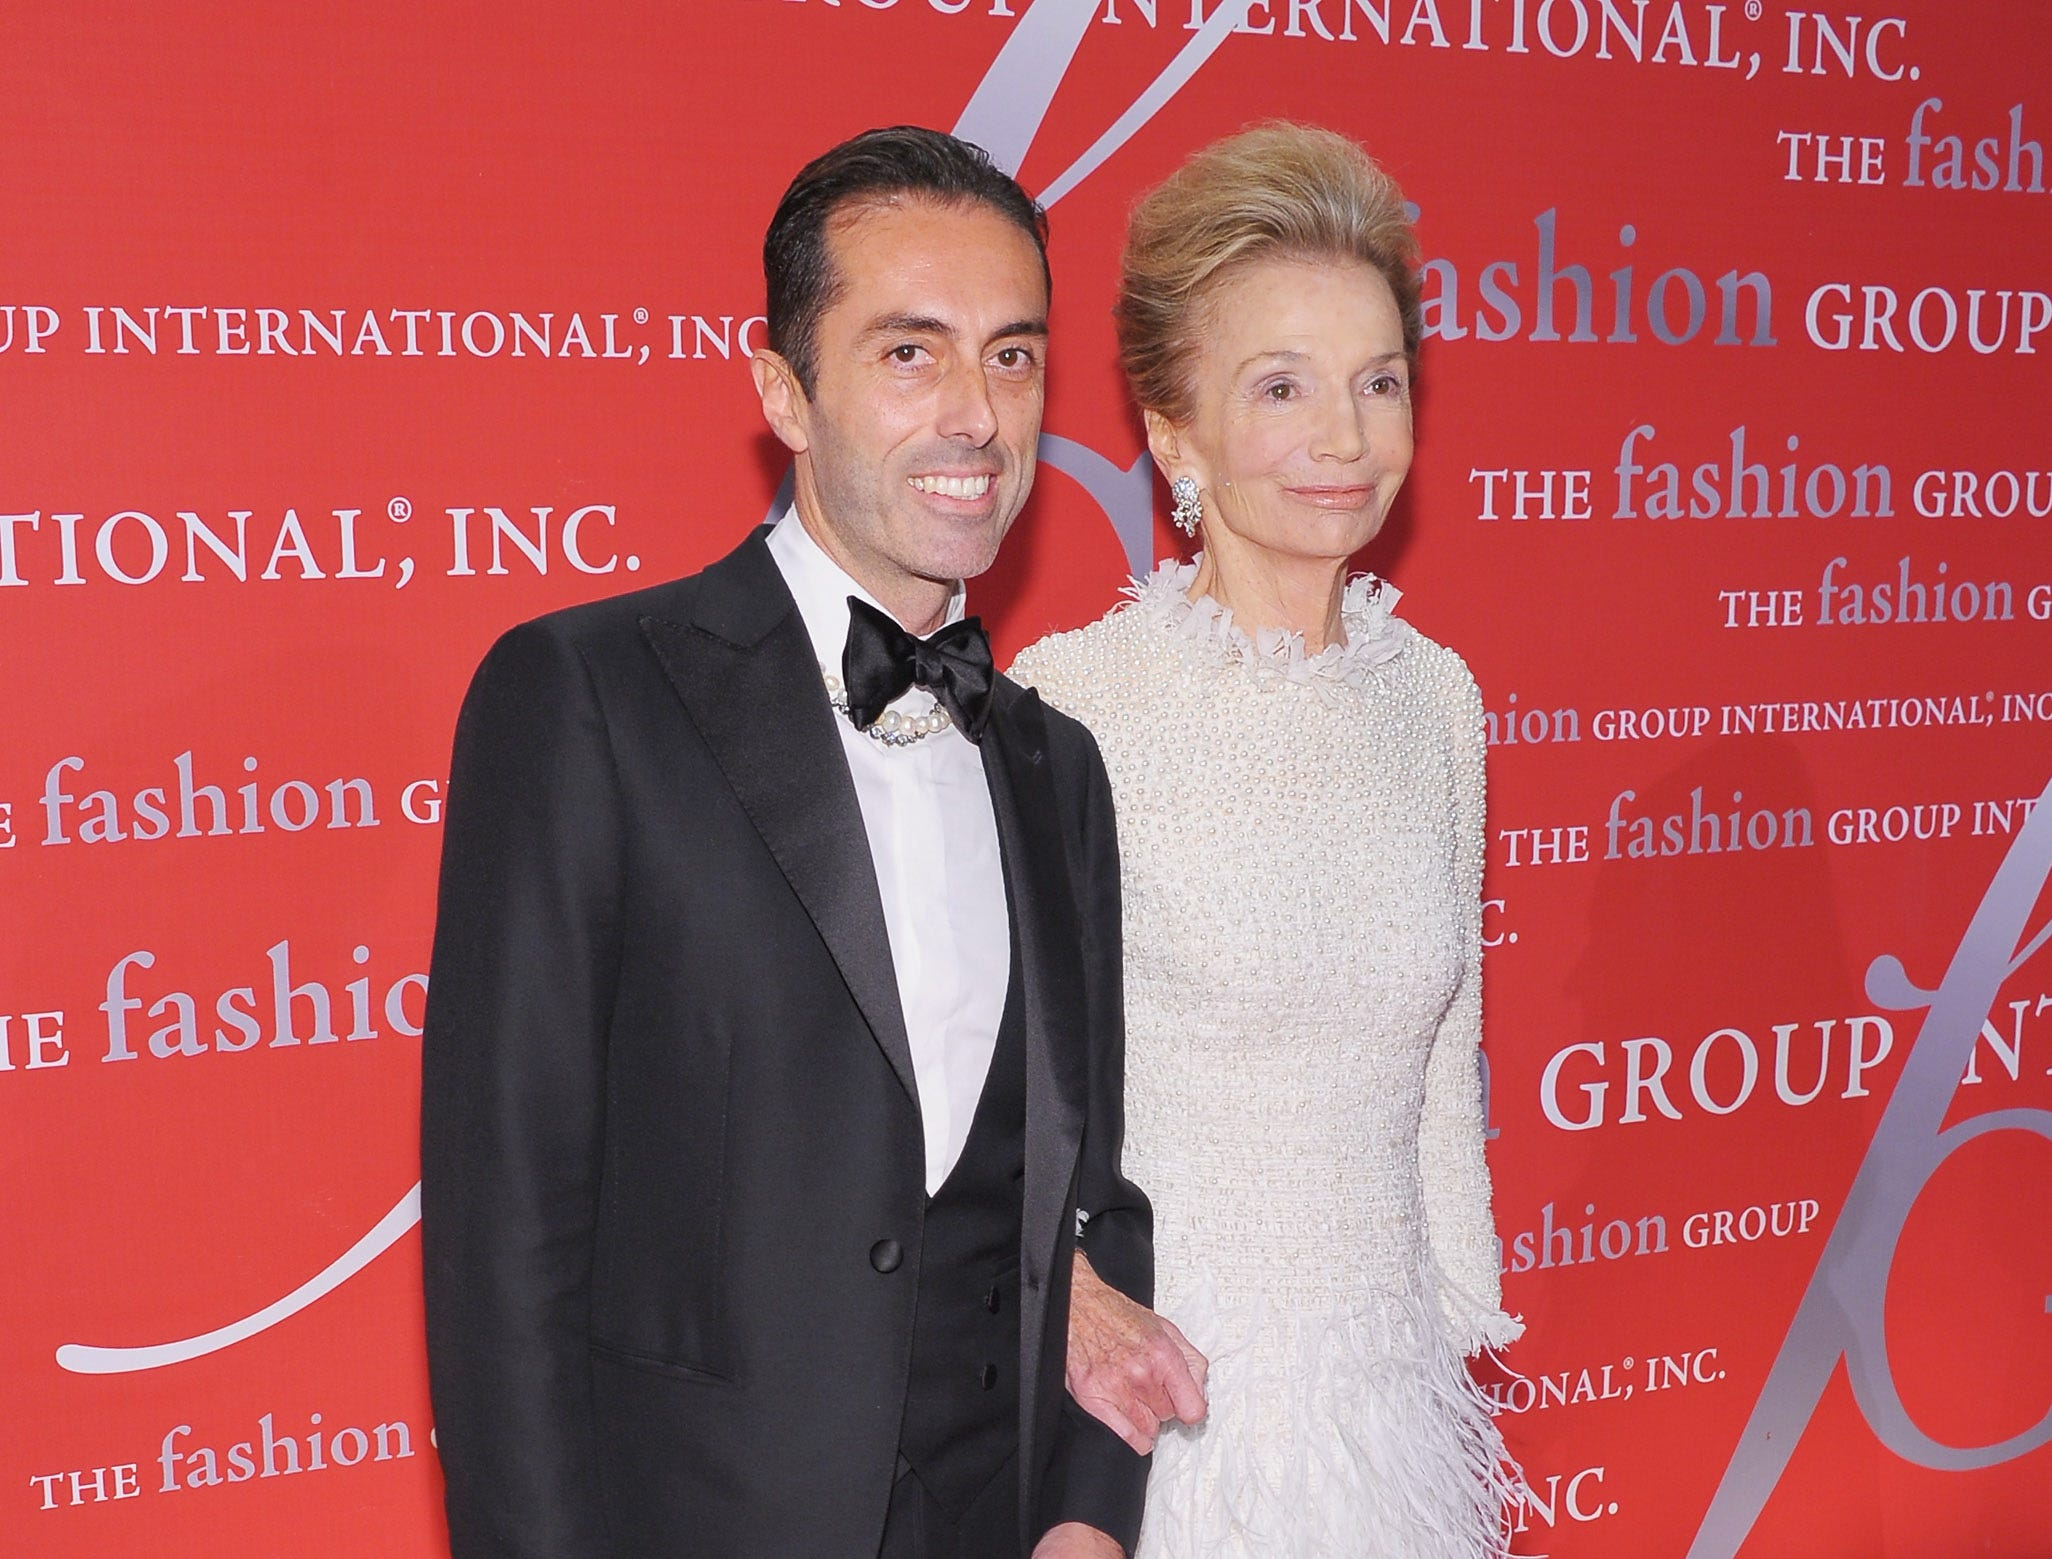 Designer Giambattista Valli and Lee Radziwill attends the Fashion Group International's 28th annual Night of Stars at Cipriani Wall Street on Oct. 27, 2011 in New York City.